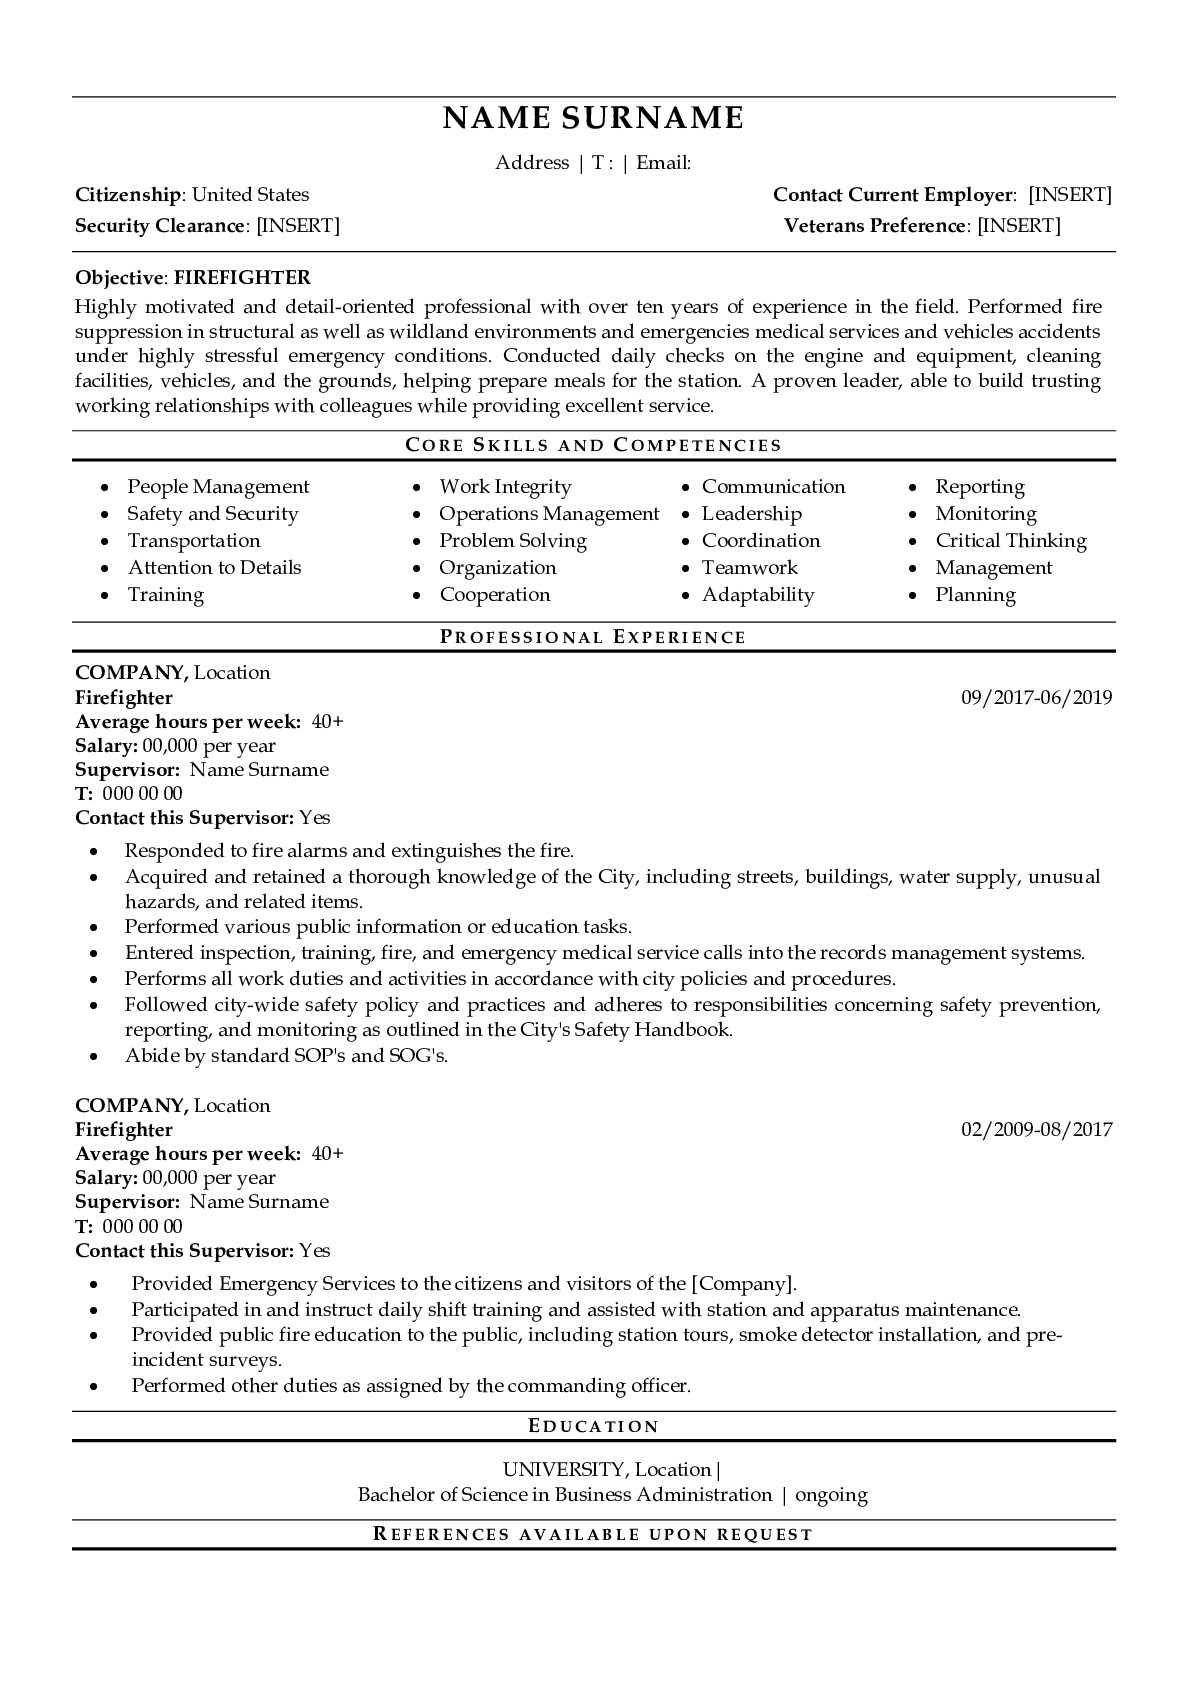 Resume Example for Firefighter